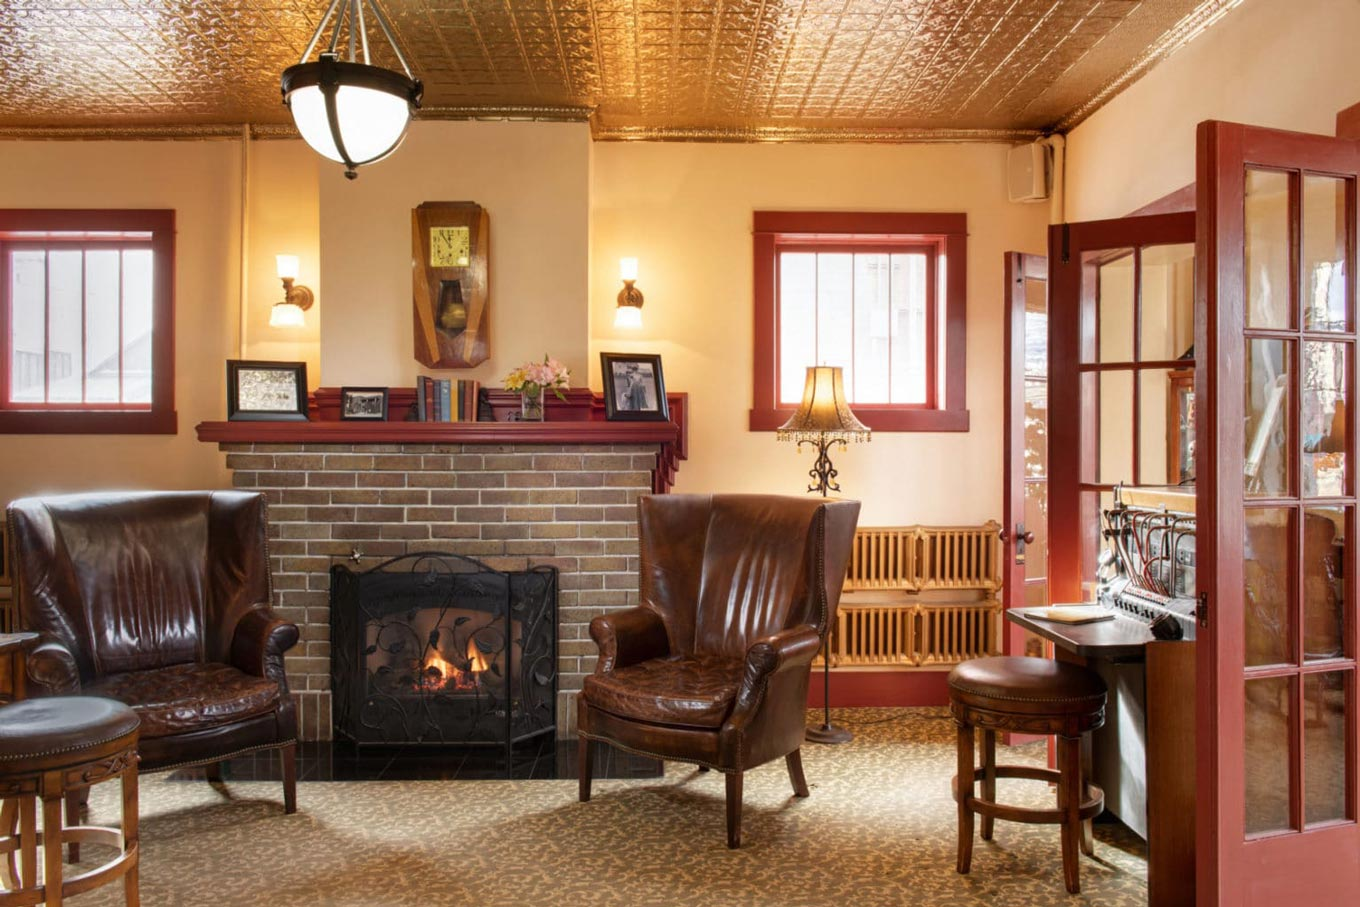 Fireplace and relaxing lobby at the Chamberlin inn